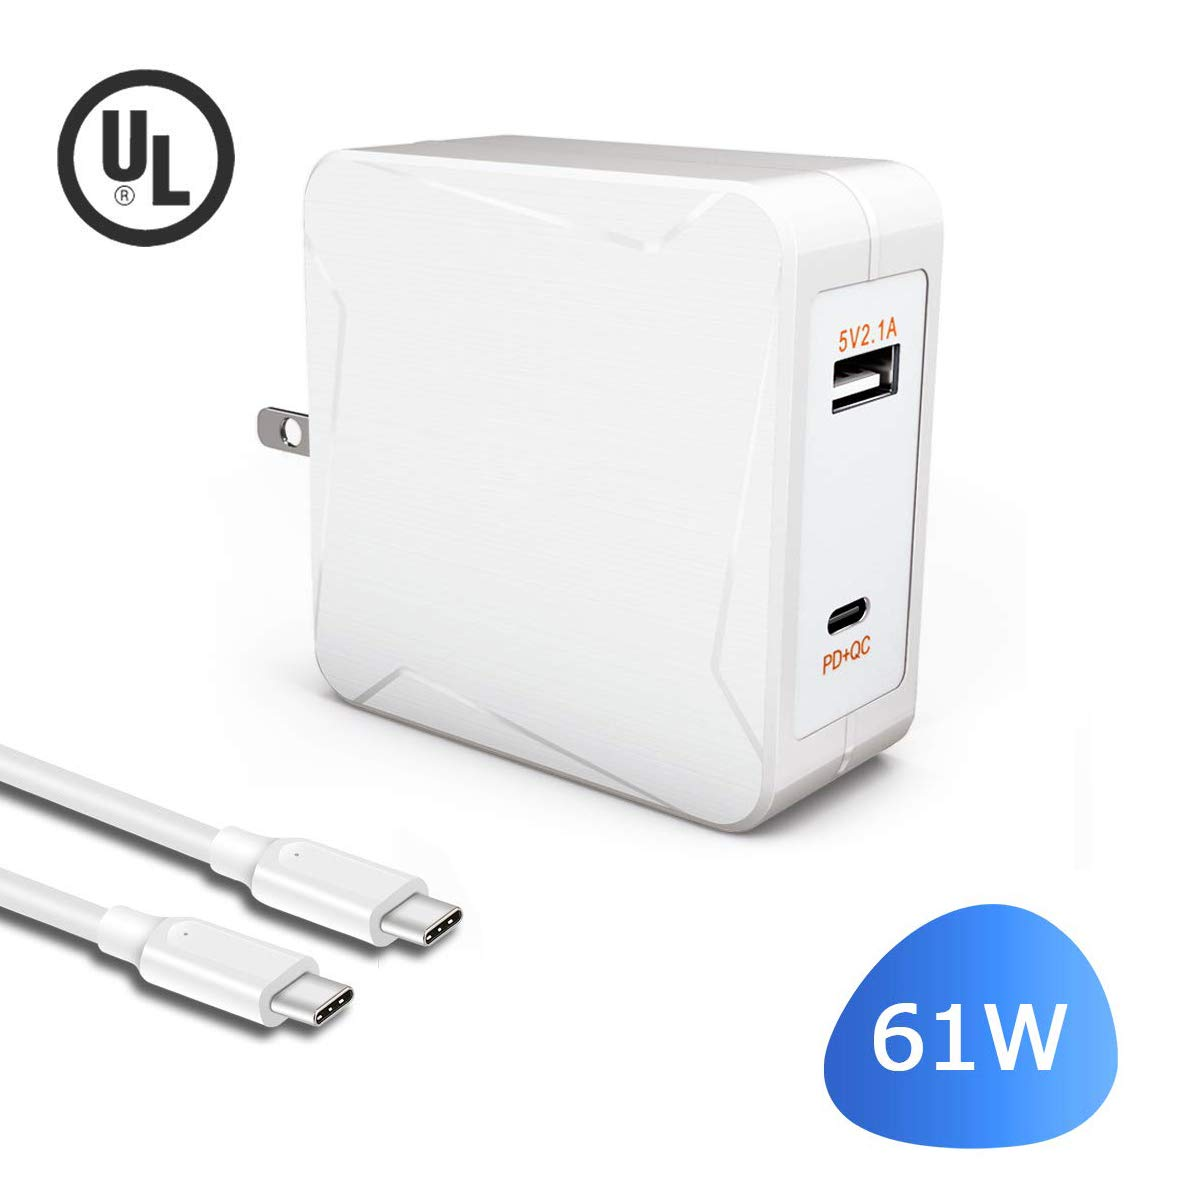 61W USB C Charger for MacBook Pro 13 inch 2019 2018 2017 2016 Thunderbolt 3 Ports Laptop-Power Supply-Adapter-Cord-Cable with New 7.5ft Extra Long Type C Cable & 5V 10W Charing Port [UL Listed]